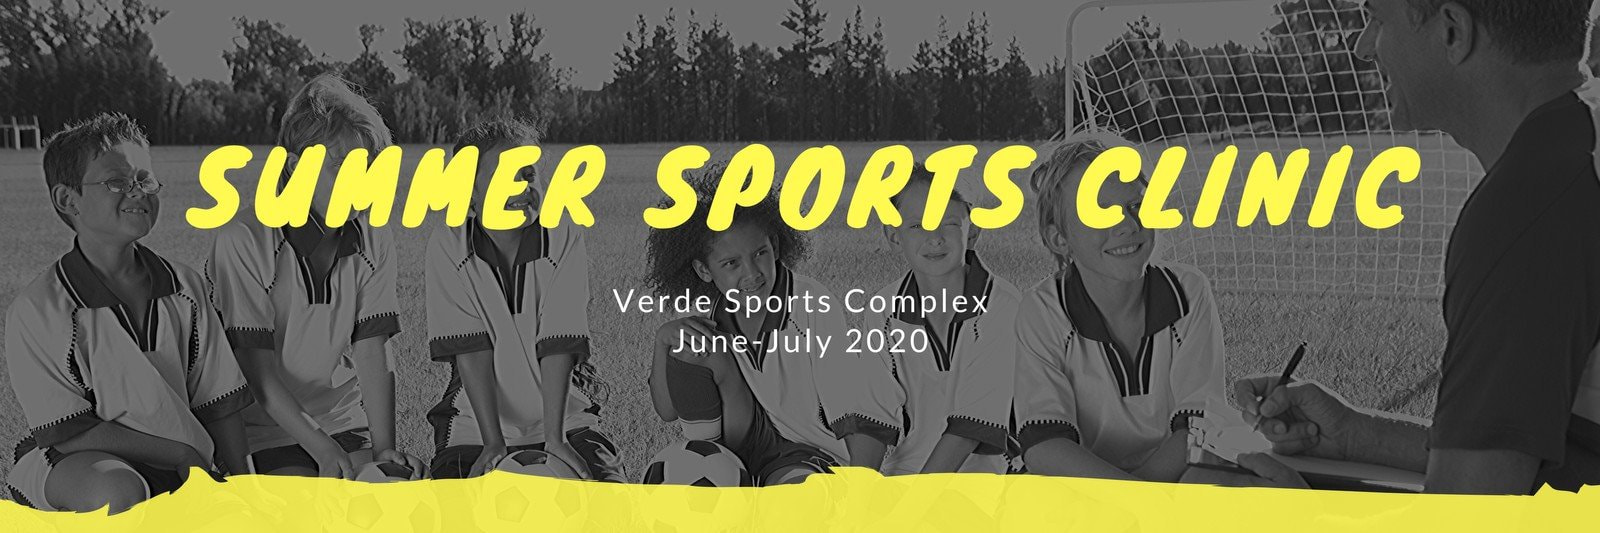 Grayscale Sports Email Header